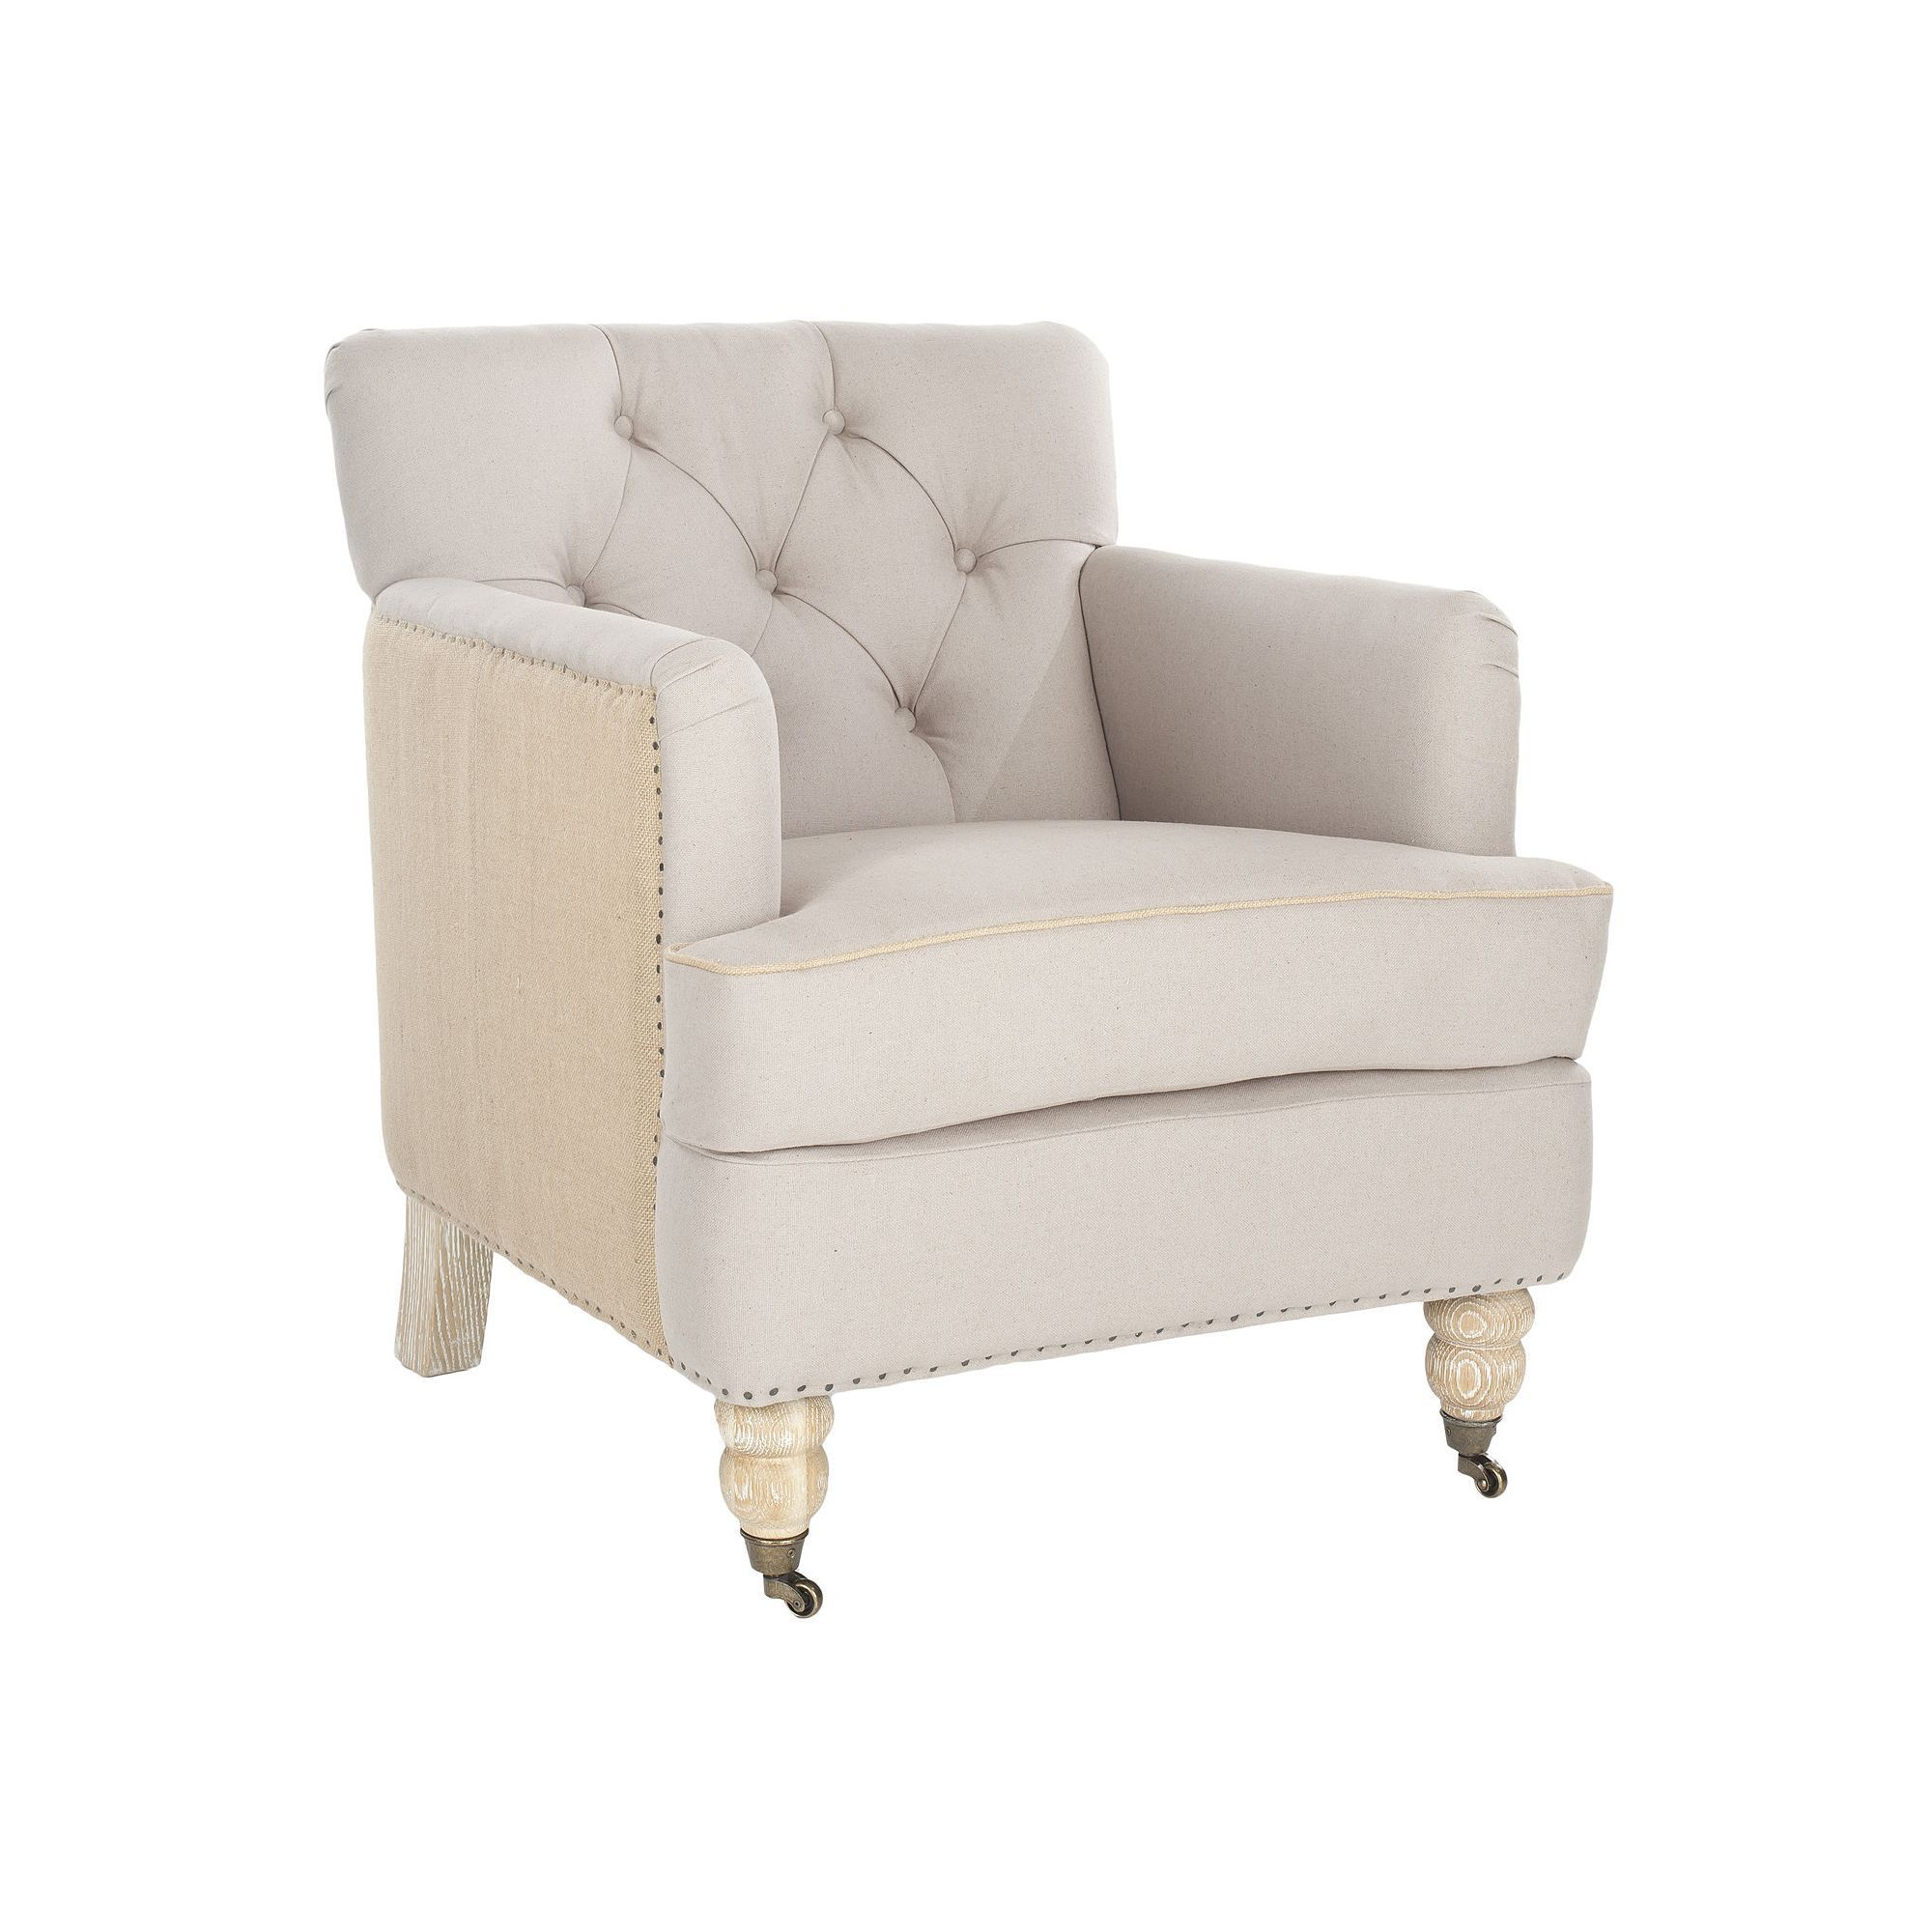 Safavieh Colin Chair in 2019 Chair, Armchair, Living